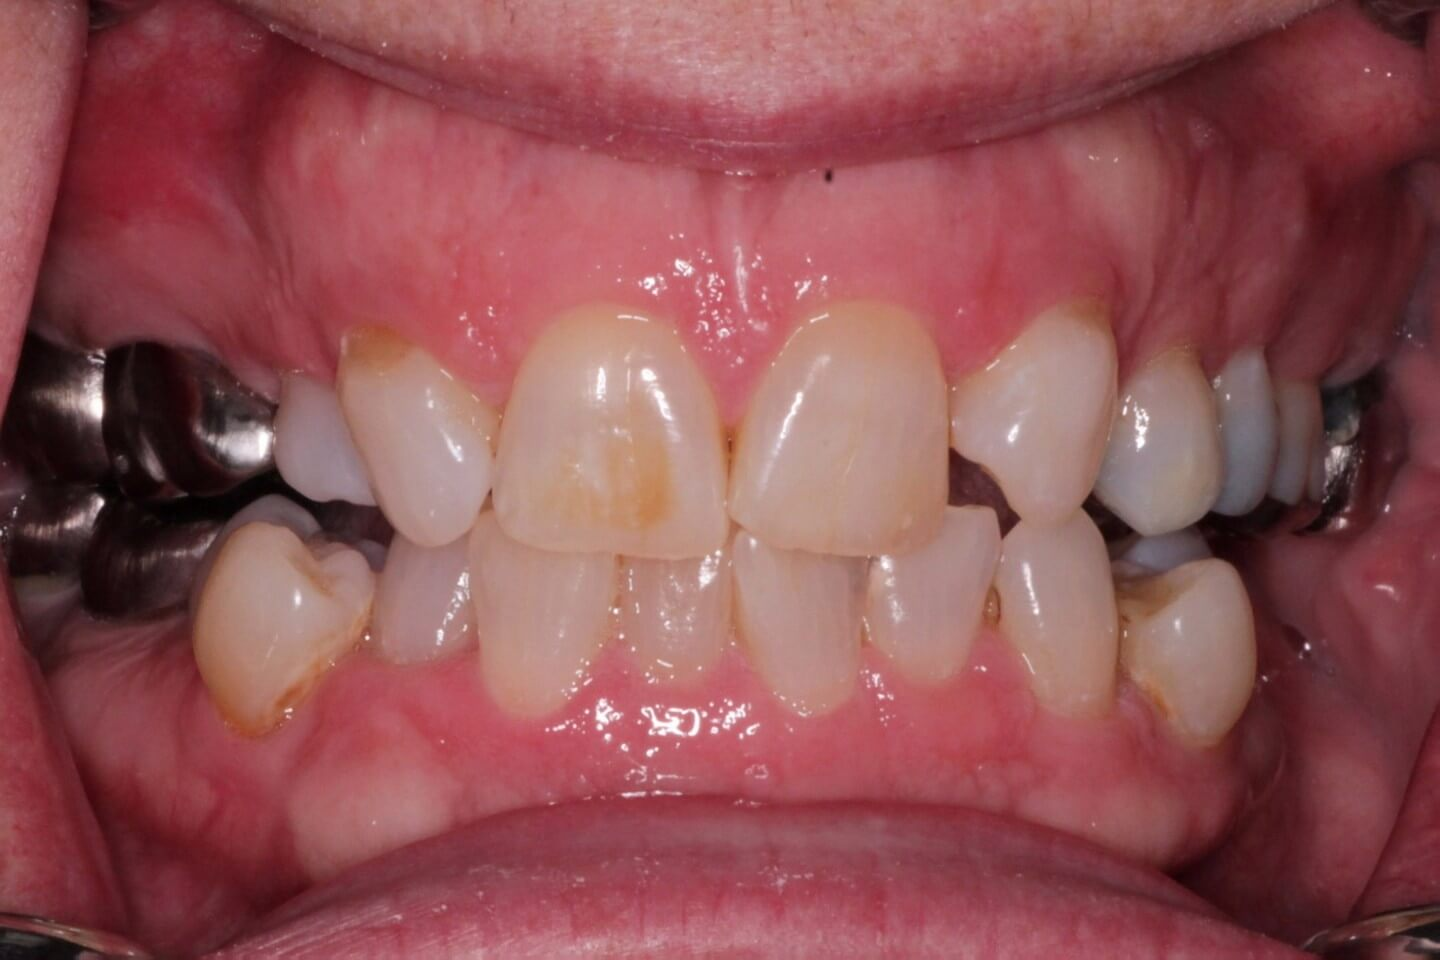 Missing incisors and fluorosis